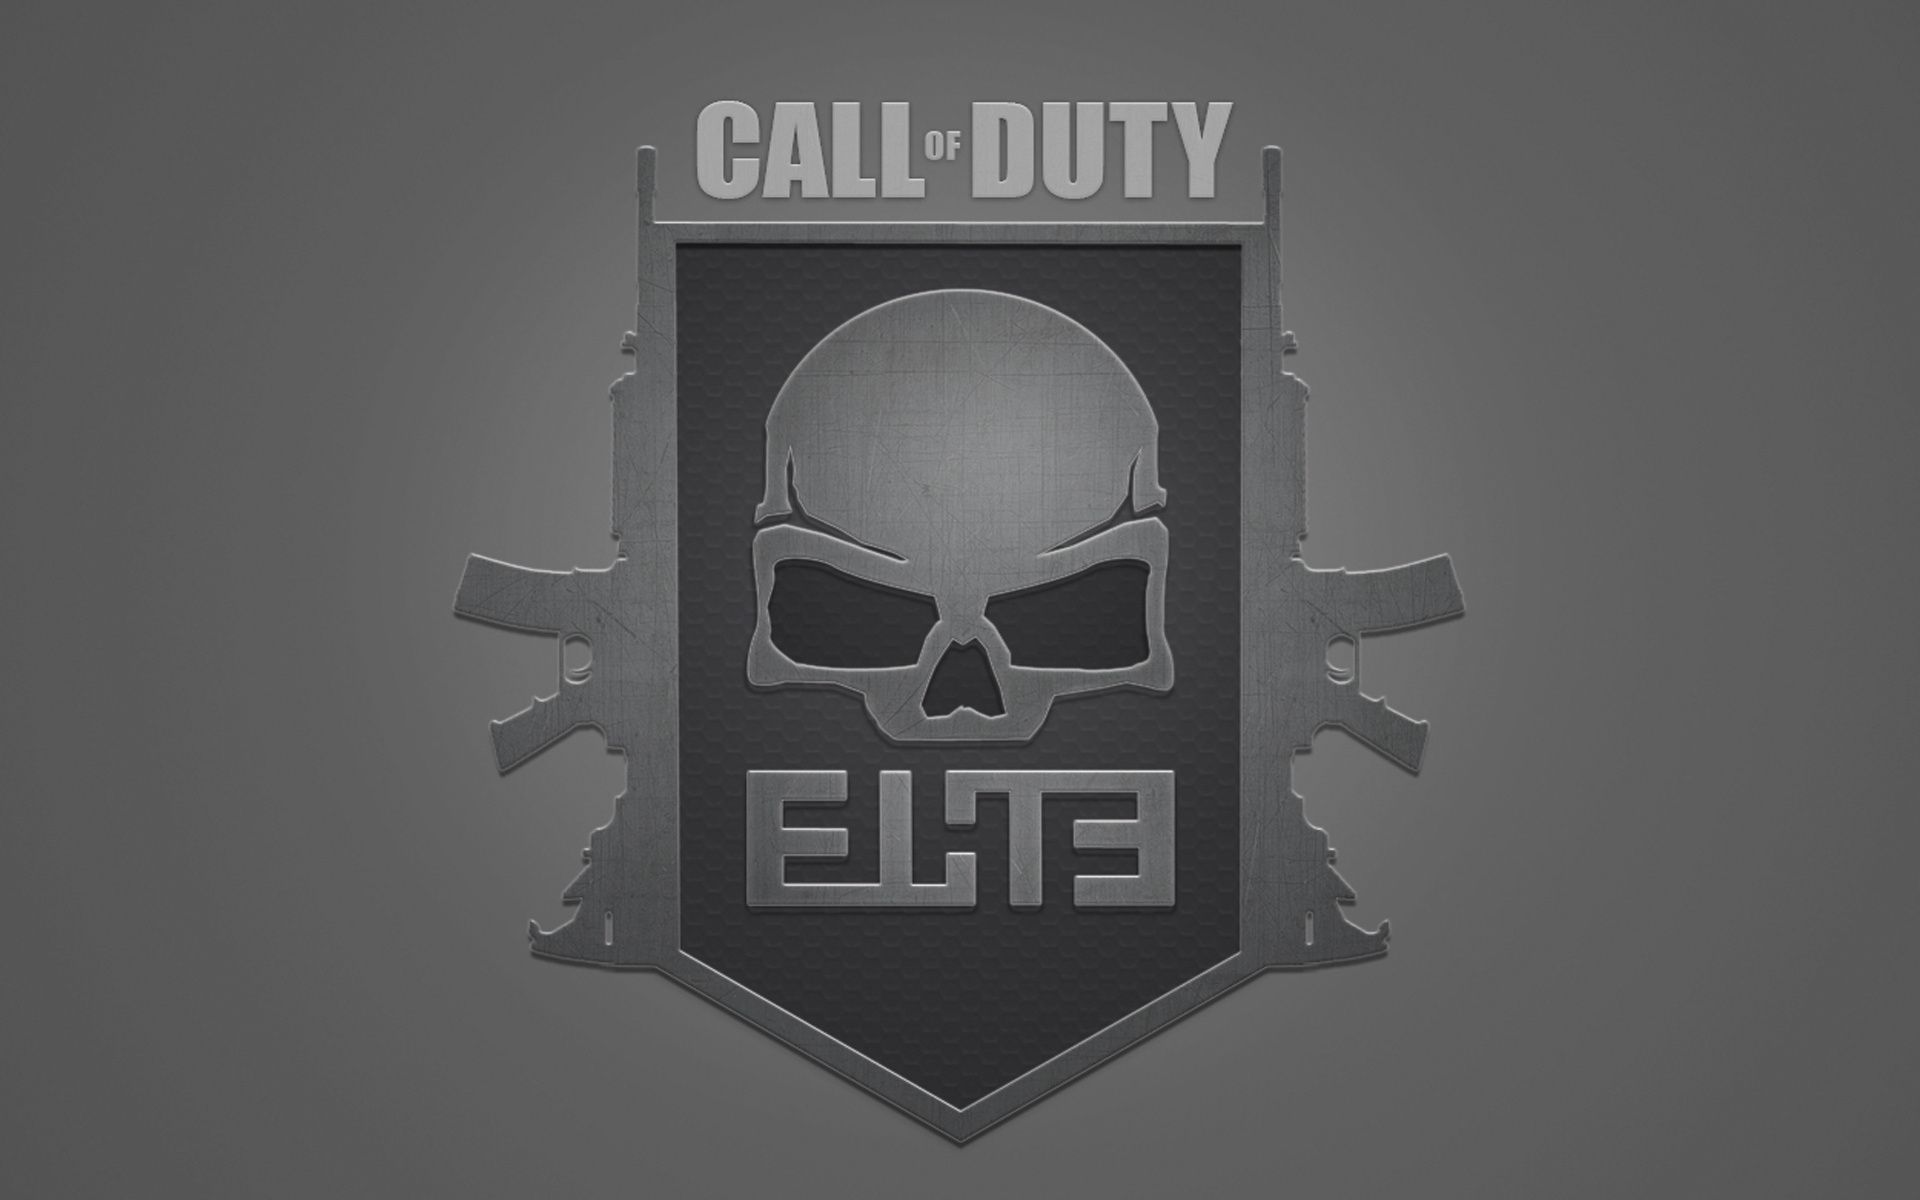 Call of duty skull mw3 multiplayer elite